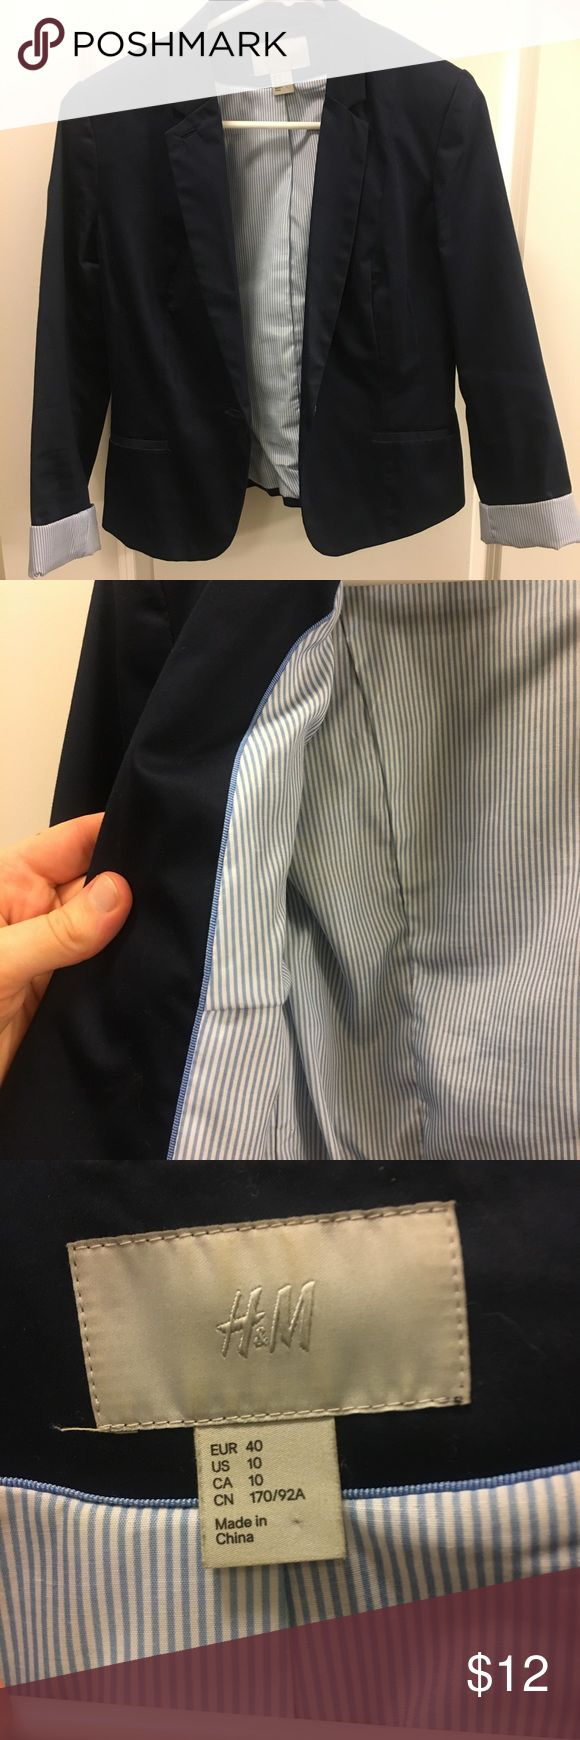 H&M Blue Blazer H&M navy blue blazer with light blue stripped interior. Cuffed sleeves also have the lighter blue stripes. Two button back detail. Size 10 for a comfortable fit over many options. H&M Jackets & Coats Blazers